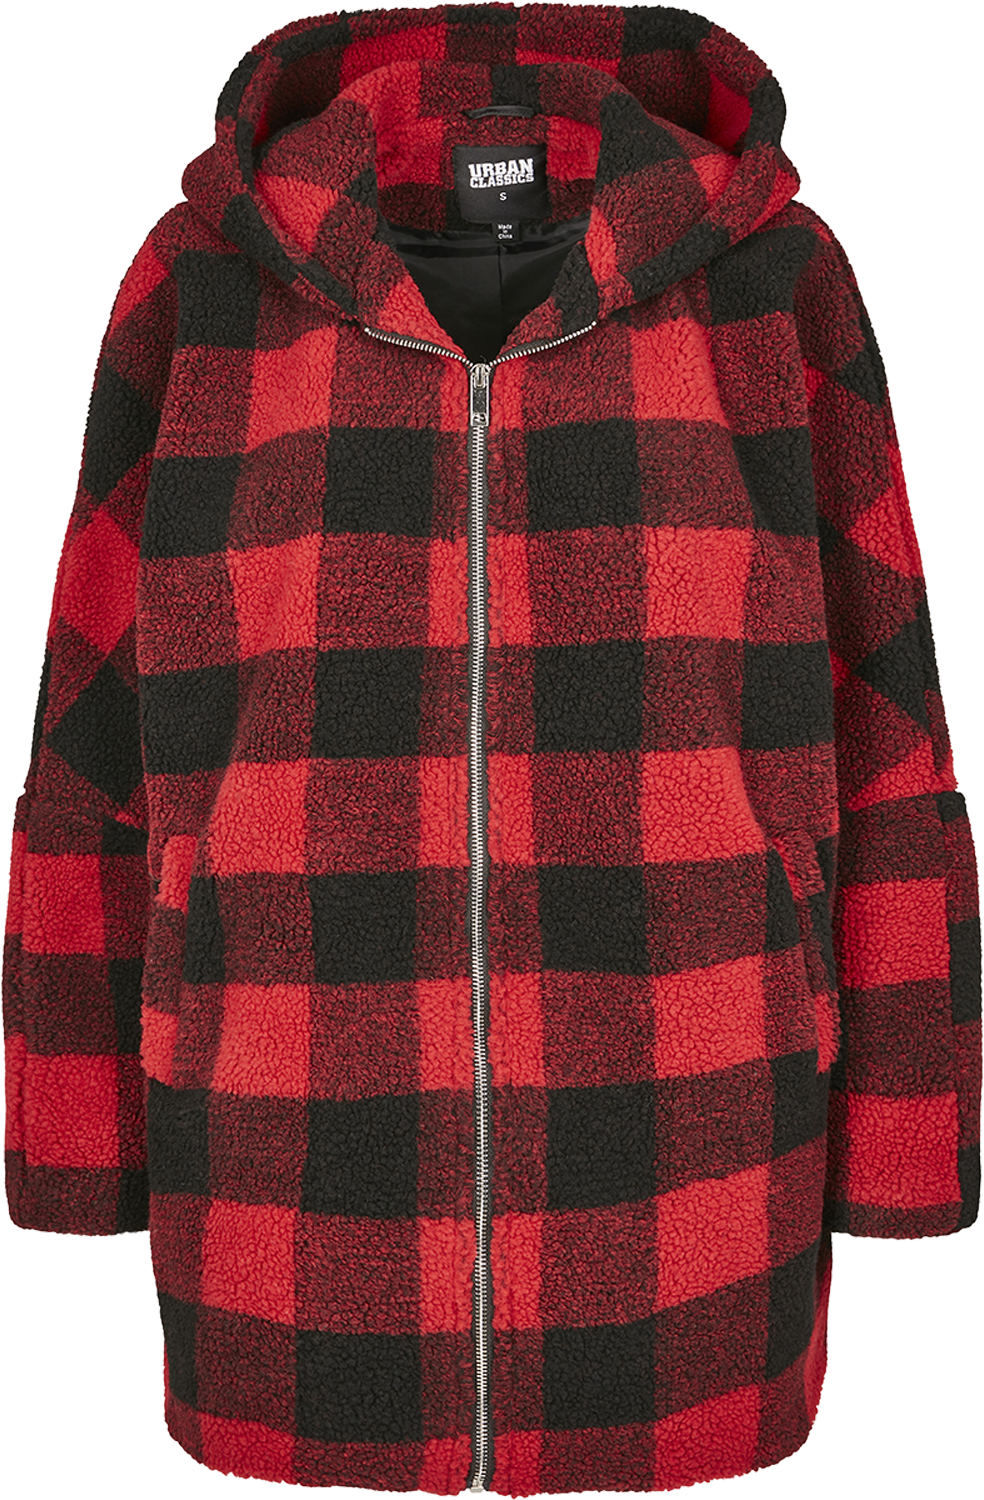 Urban Classics Ladies Hooded Oversized Check Sherpa Chaqueta de Invierno rojonegro